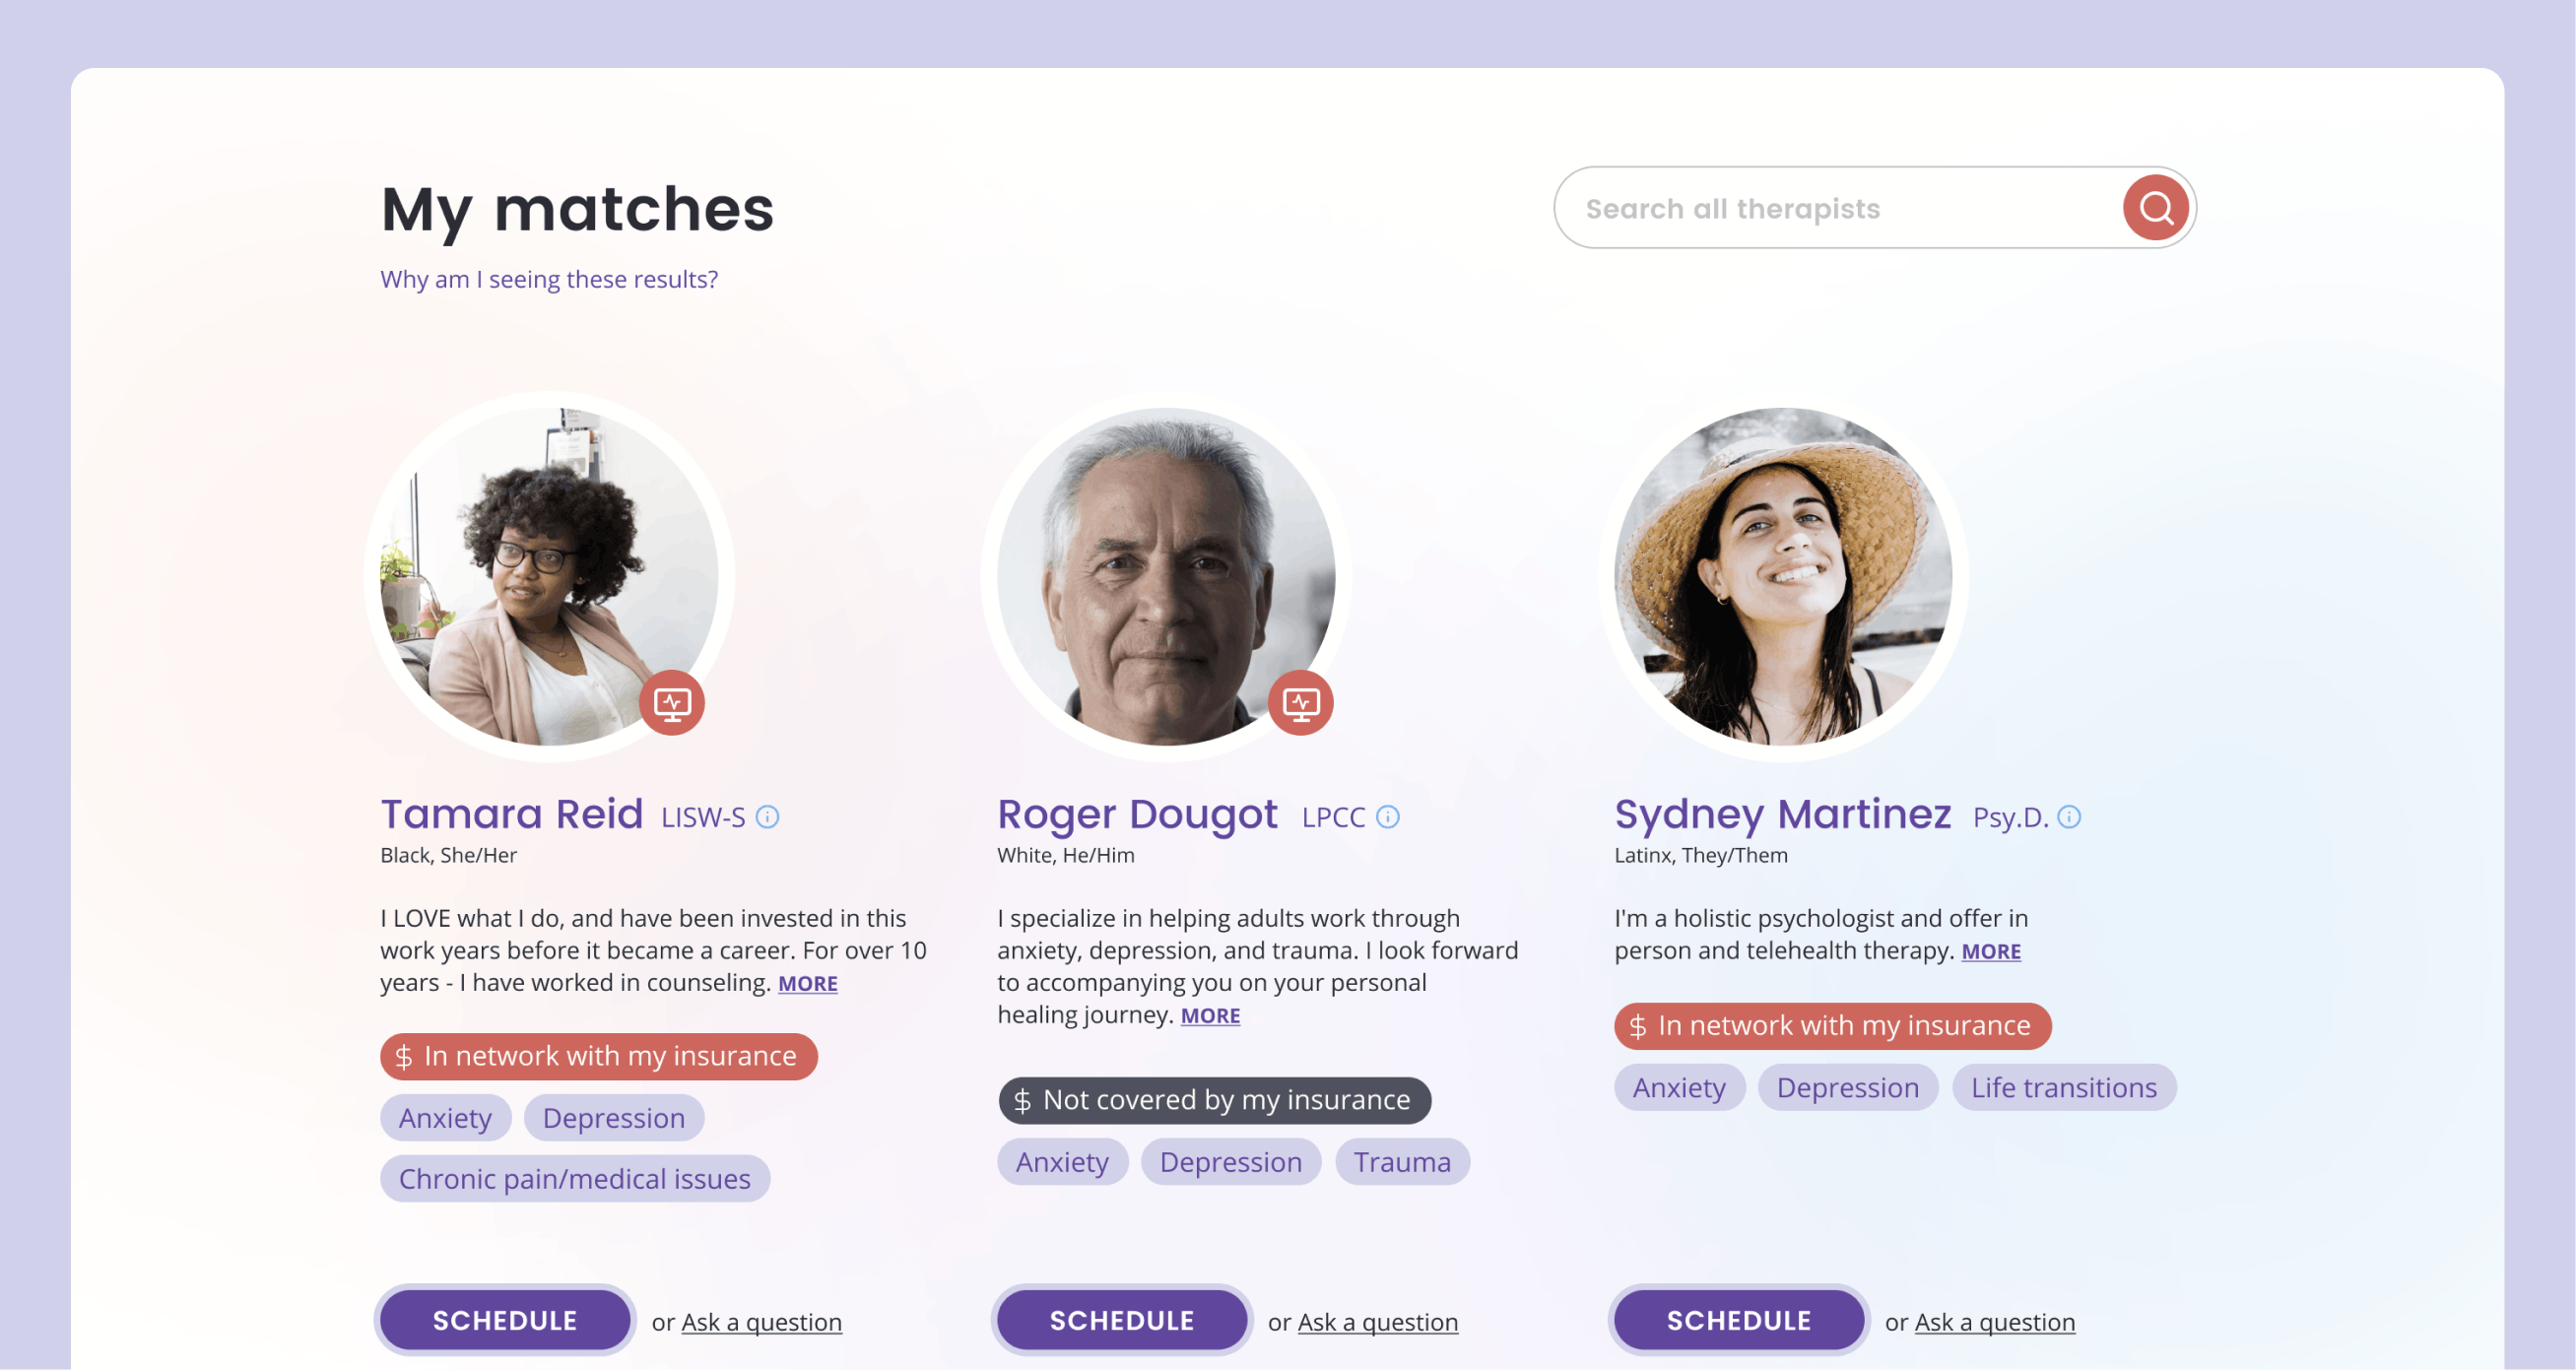 "A webpage titled ""My matches,"" displaying three therapist options. The therapists' names are Tamara Reid, Roger Dougot, and Sydney Martinez. Each therapist has credentials, race and pronouns, a description, insurance coverage, and treatment specialties listed. There is also an option to schedule an appointment for each therapist."